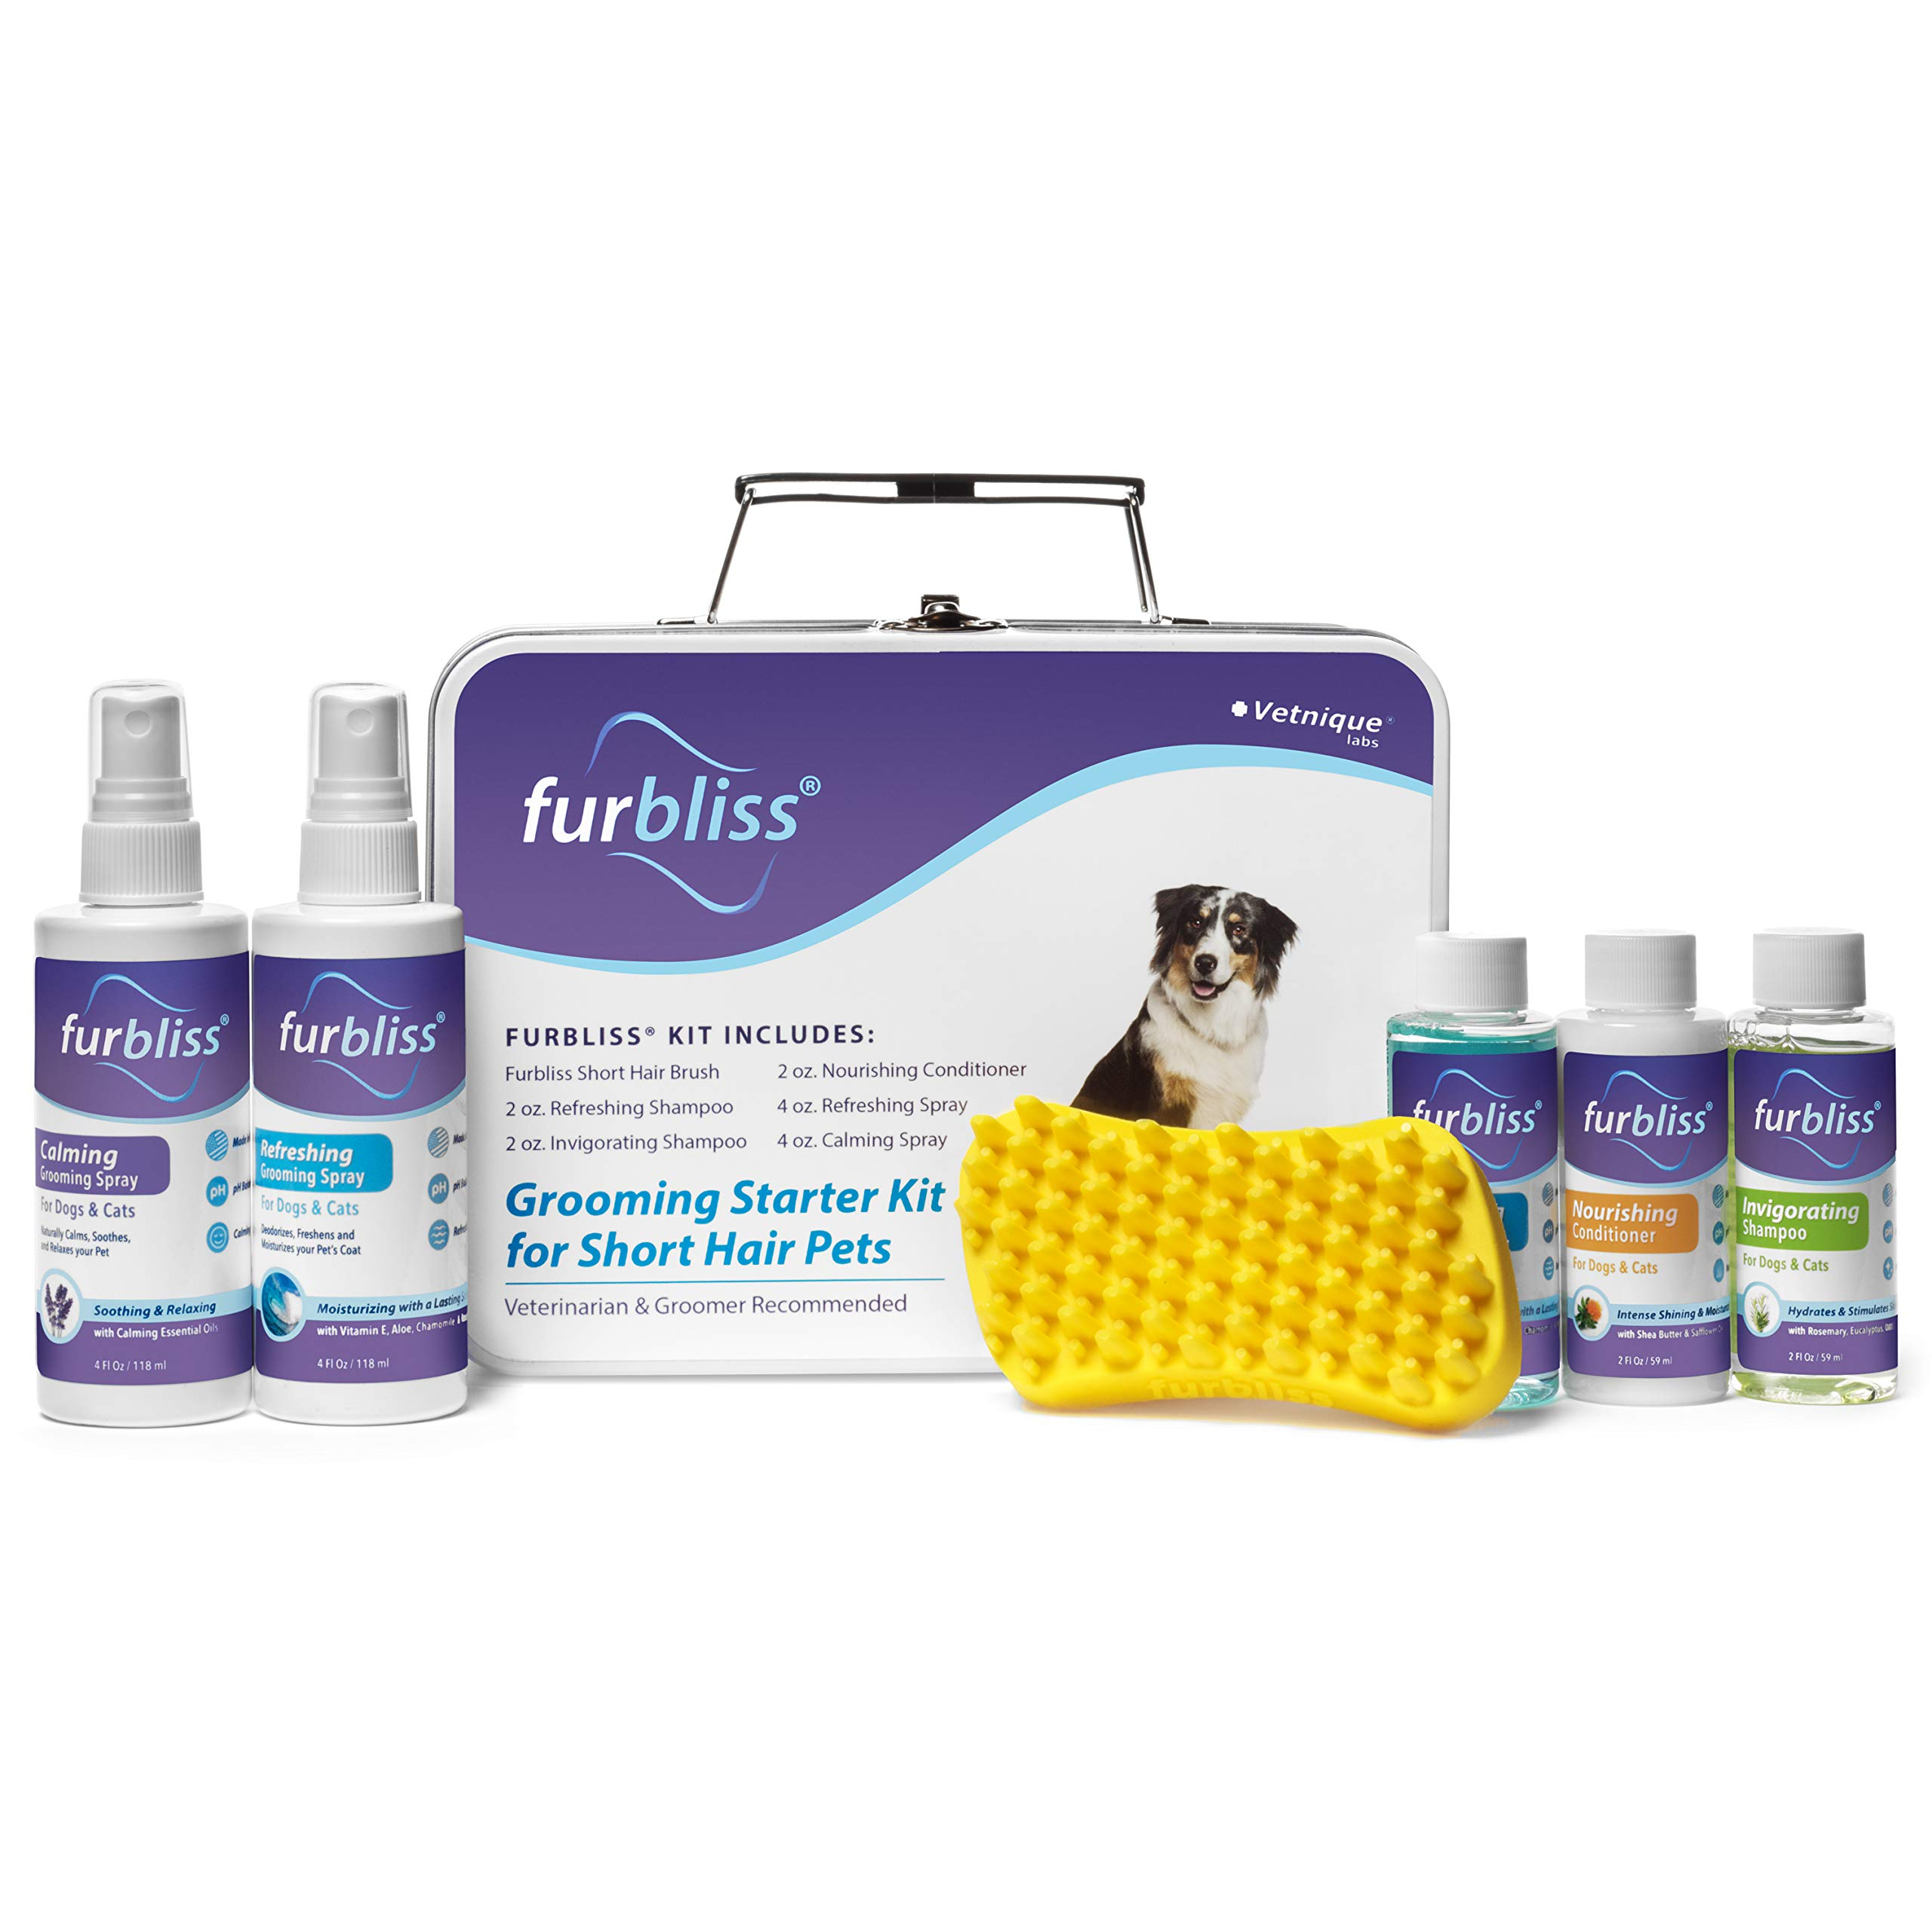 Furbliss Grooming Kit for Dogs, Cats and Pets with Short Hair - Cat/Dog Shampoo, Cat/Dog Conditioner, Cologne Sprays and The Brush Included